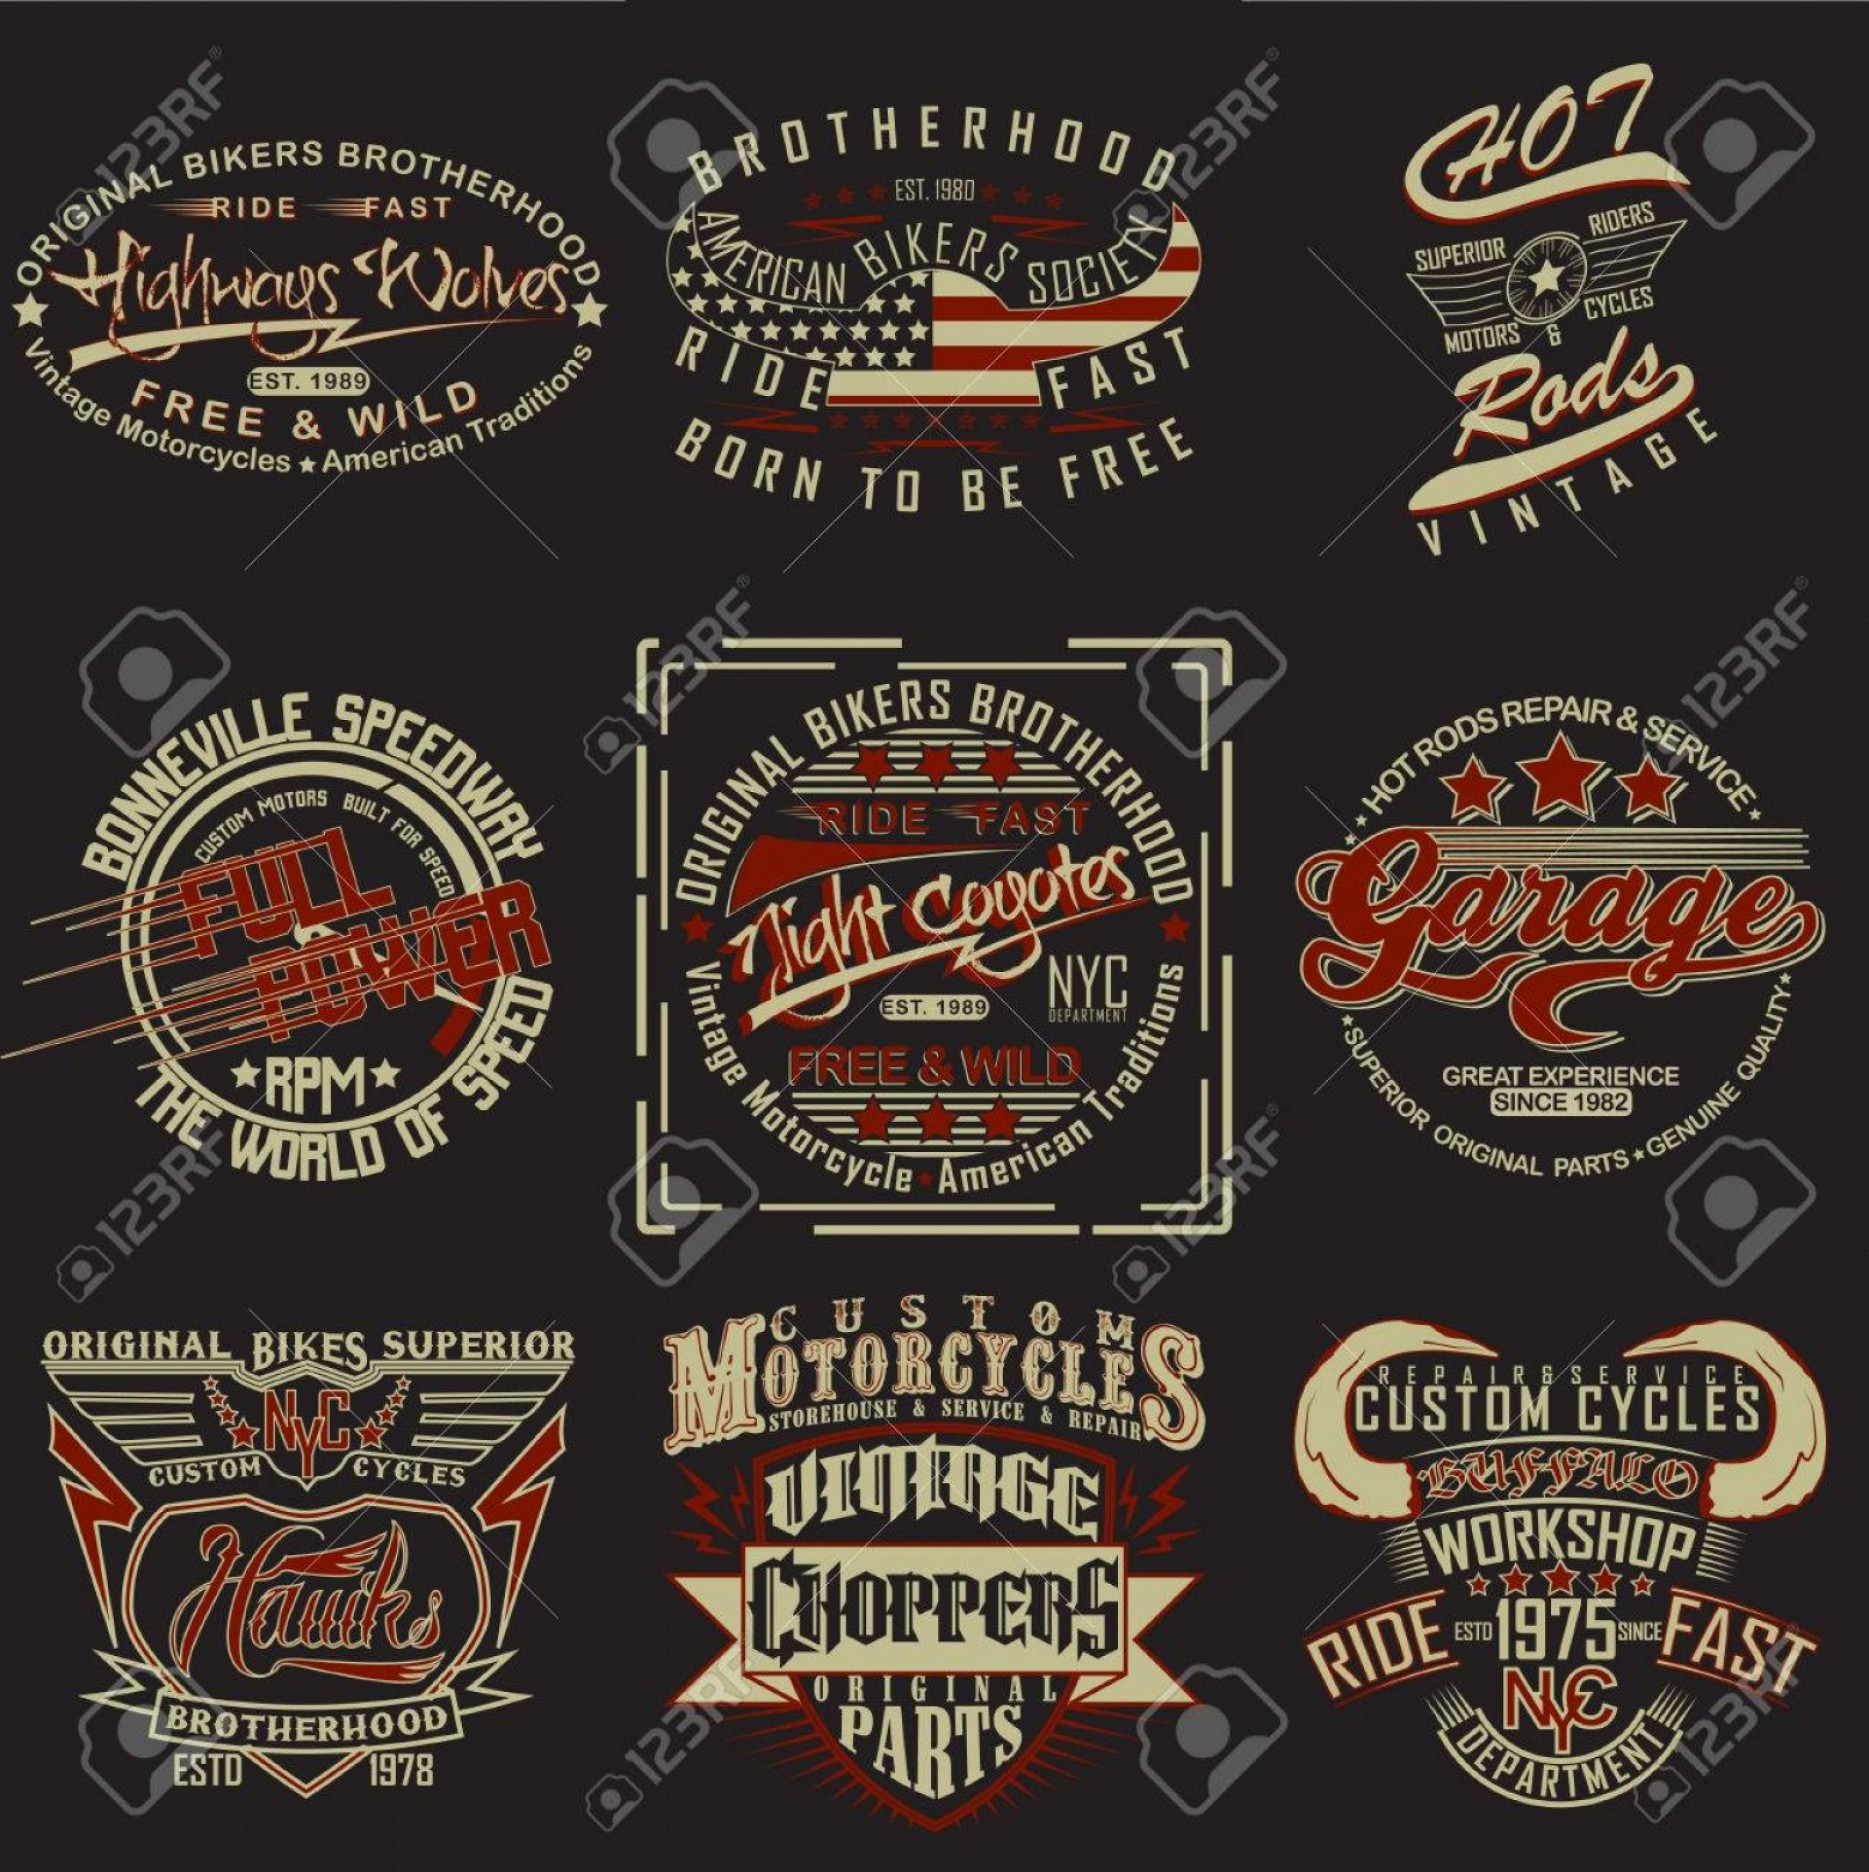 Vector Stamp Shirts: Photostock Vector Set Of T Shirt Graphic Designs Vintage Print Stamps Typography Emblems Of Garage Or Brotherhoods Bik